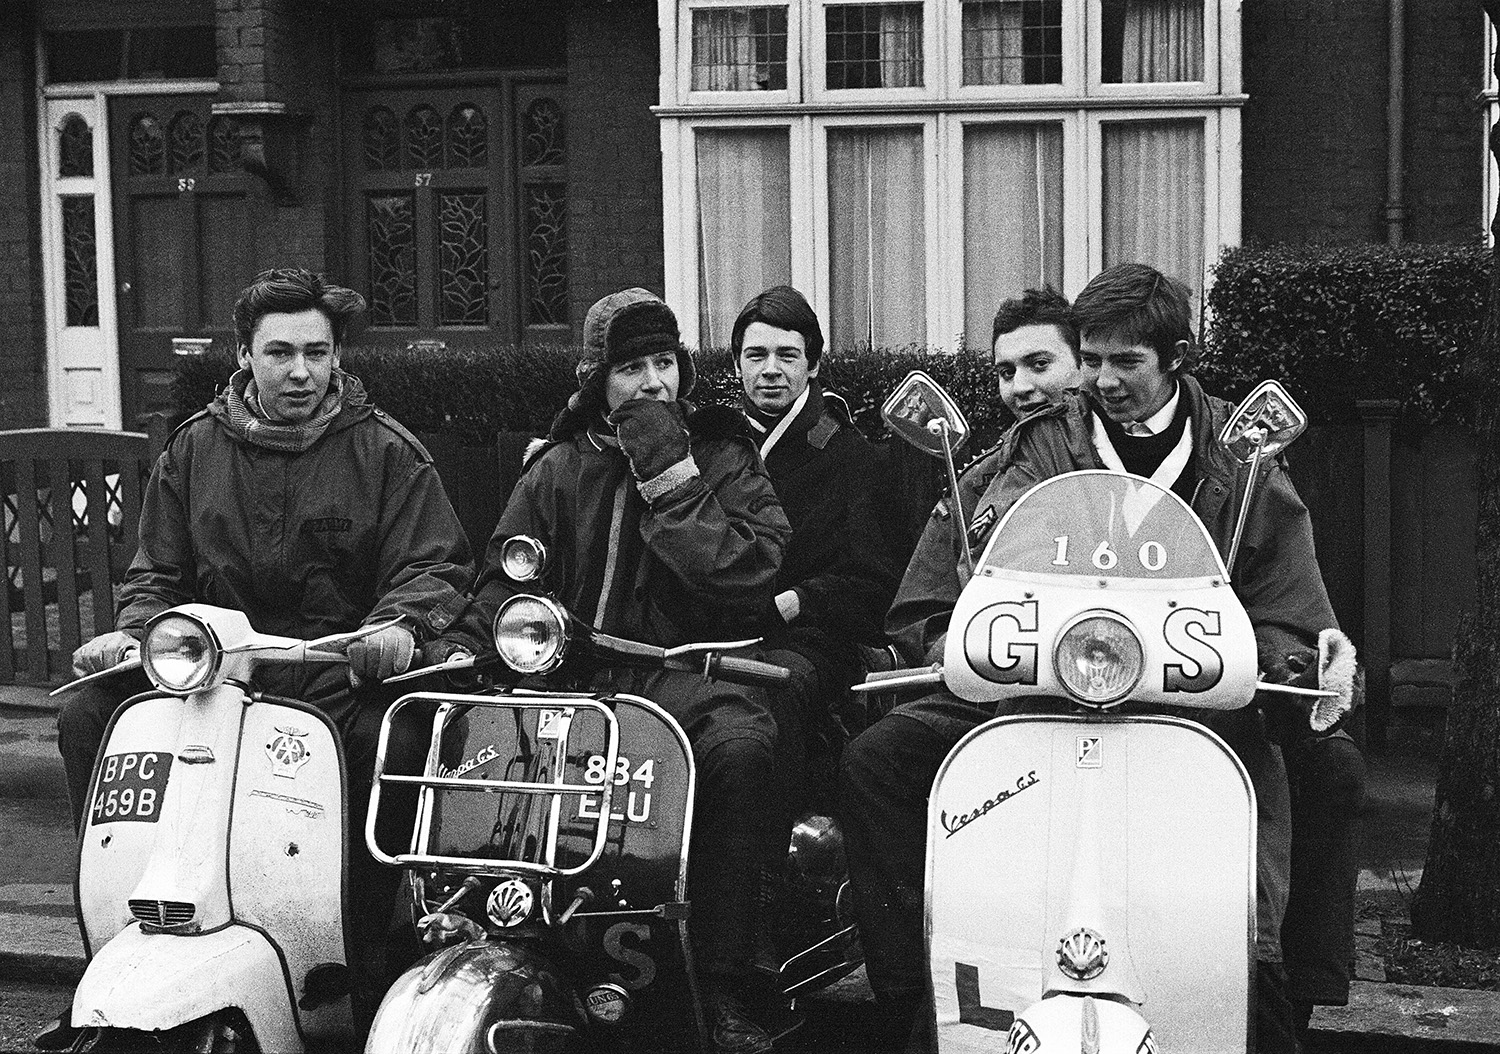 Teenage mods, modernists in parkas on their Vespa scooters during swinging sixties, London, 1964 by Peter Francis